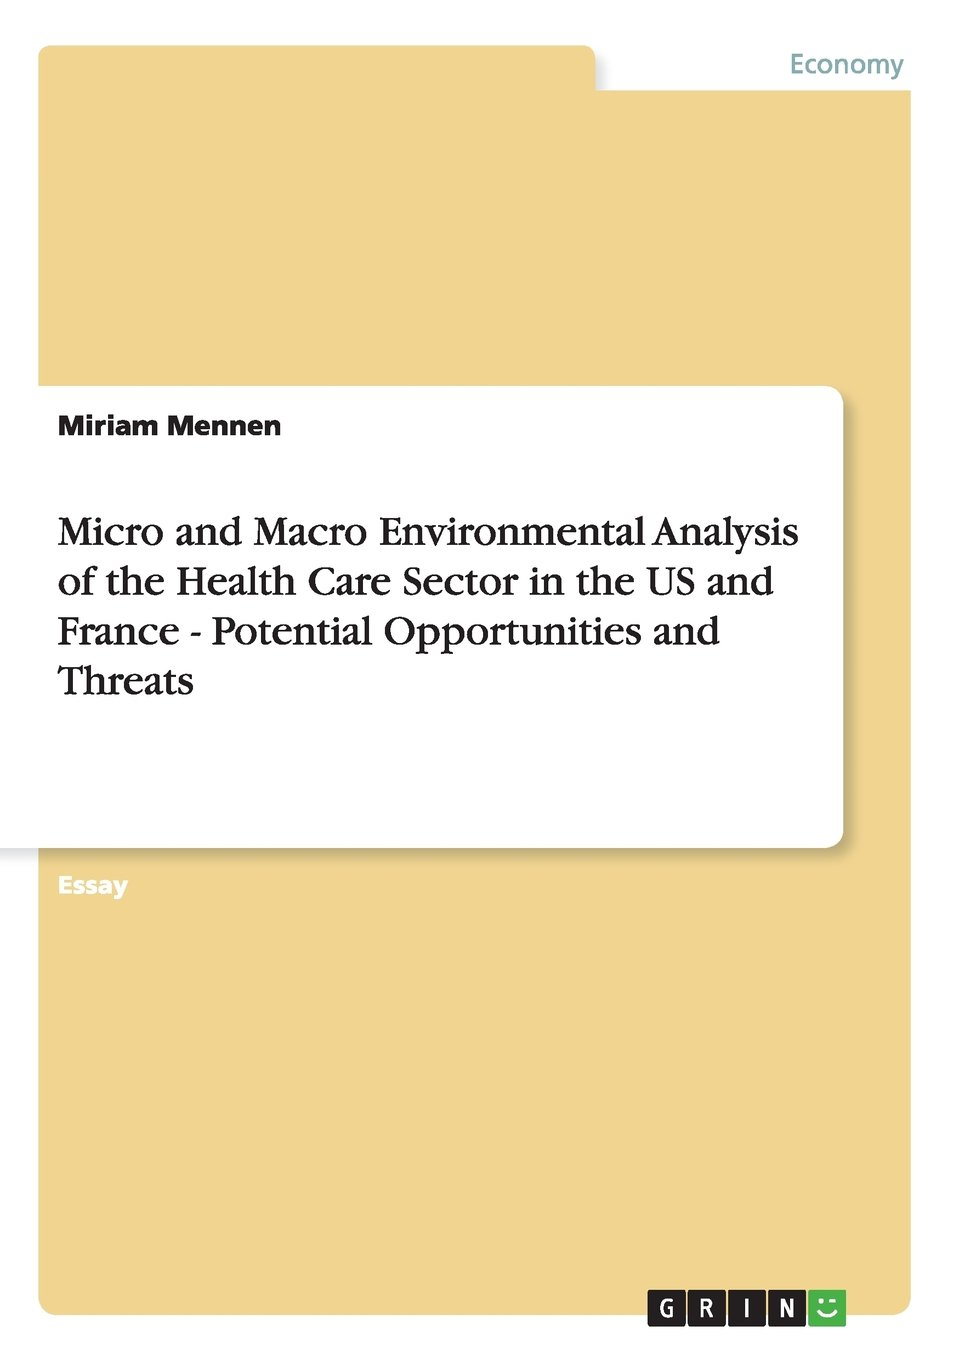 Micro and Macro Environmental Analysis of the Health Care Sector in the US and France  - Potential Opportunities and Threats pdf